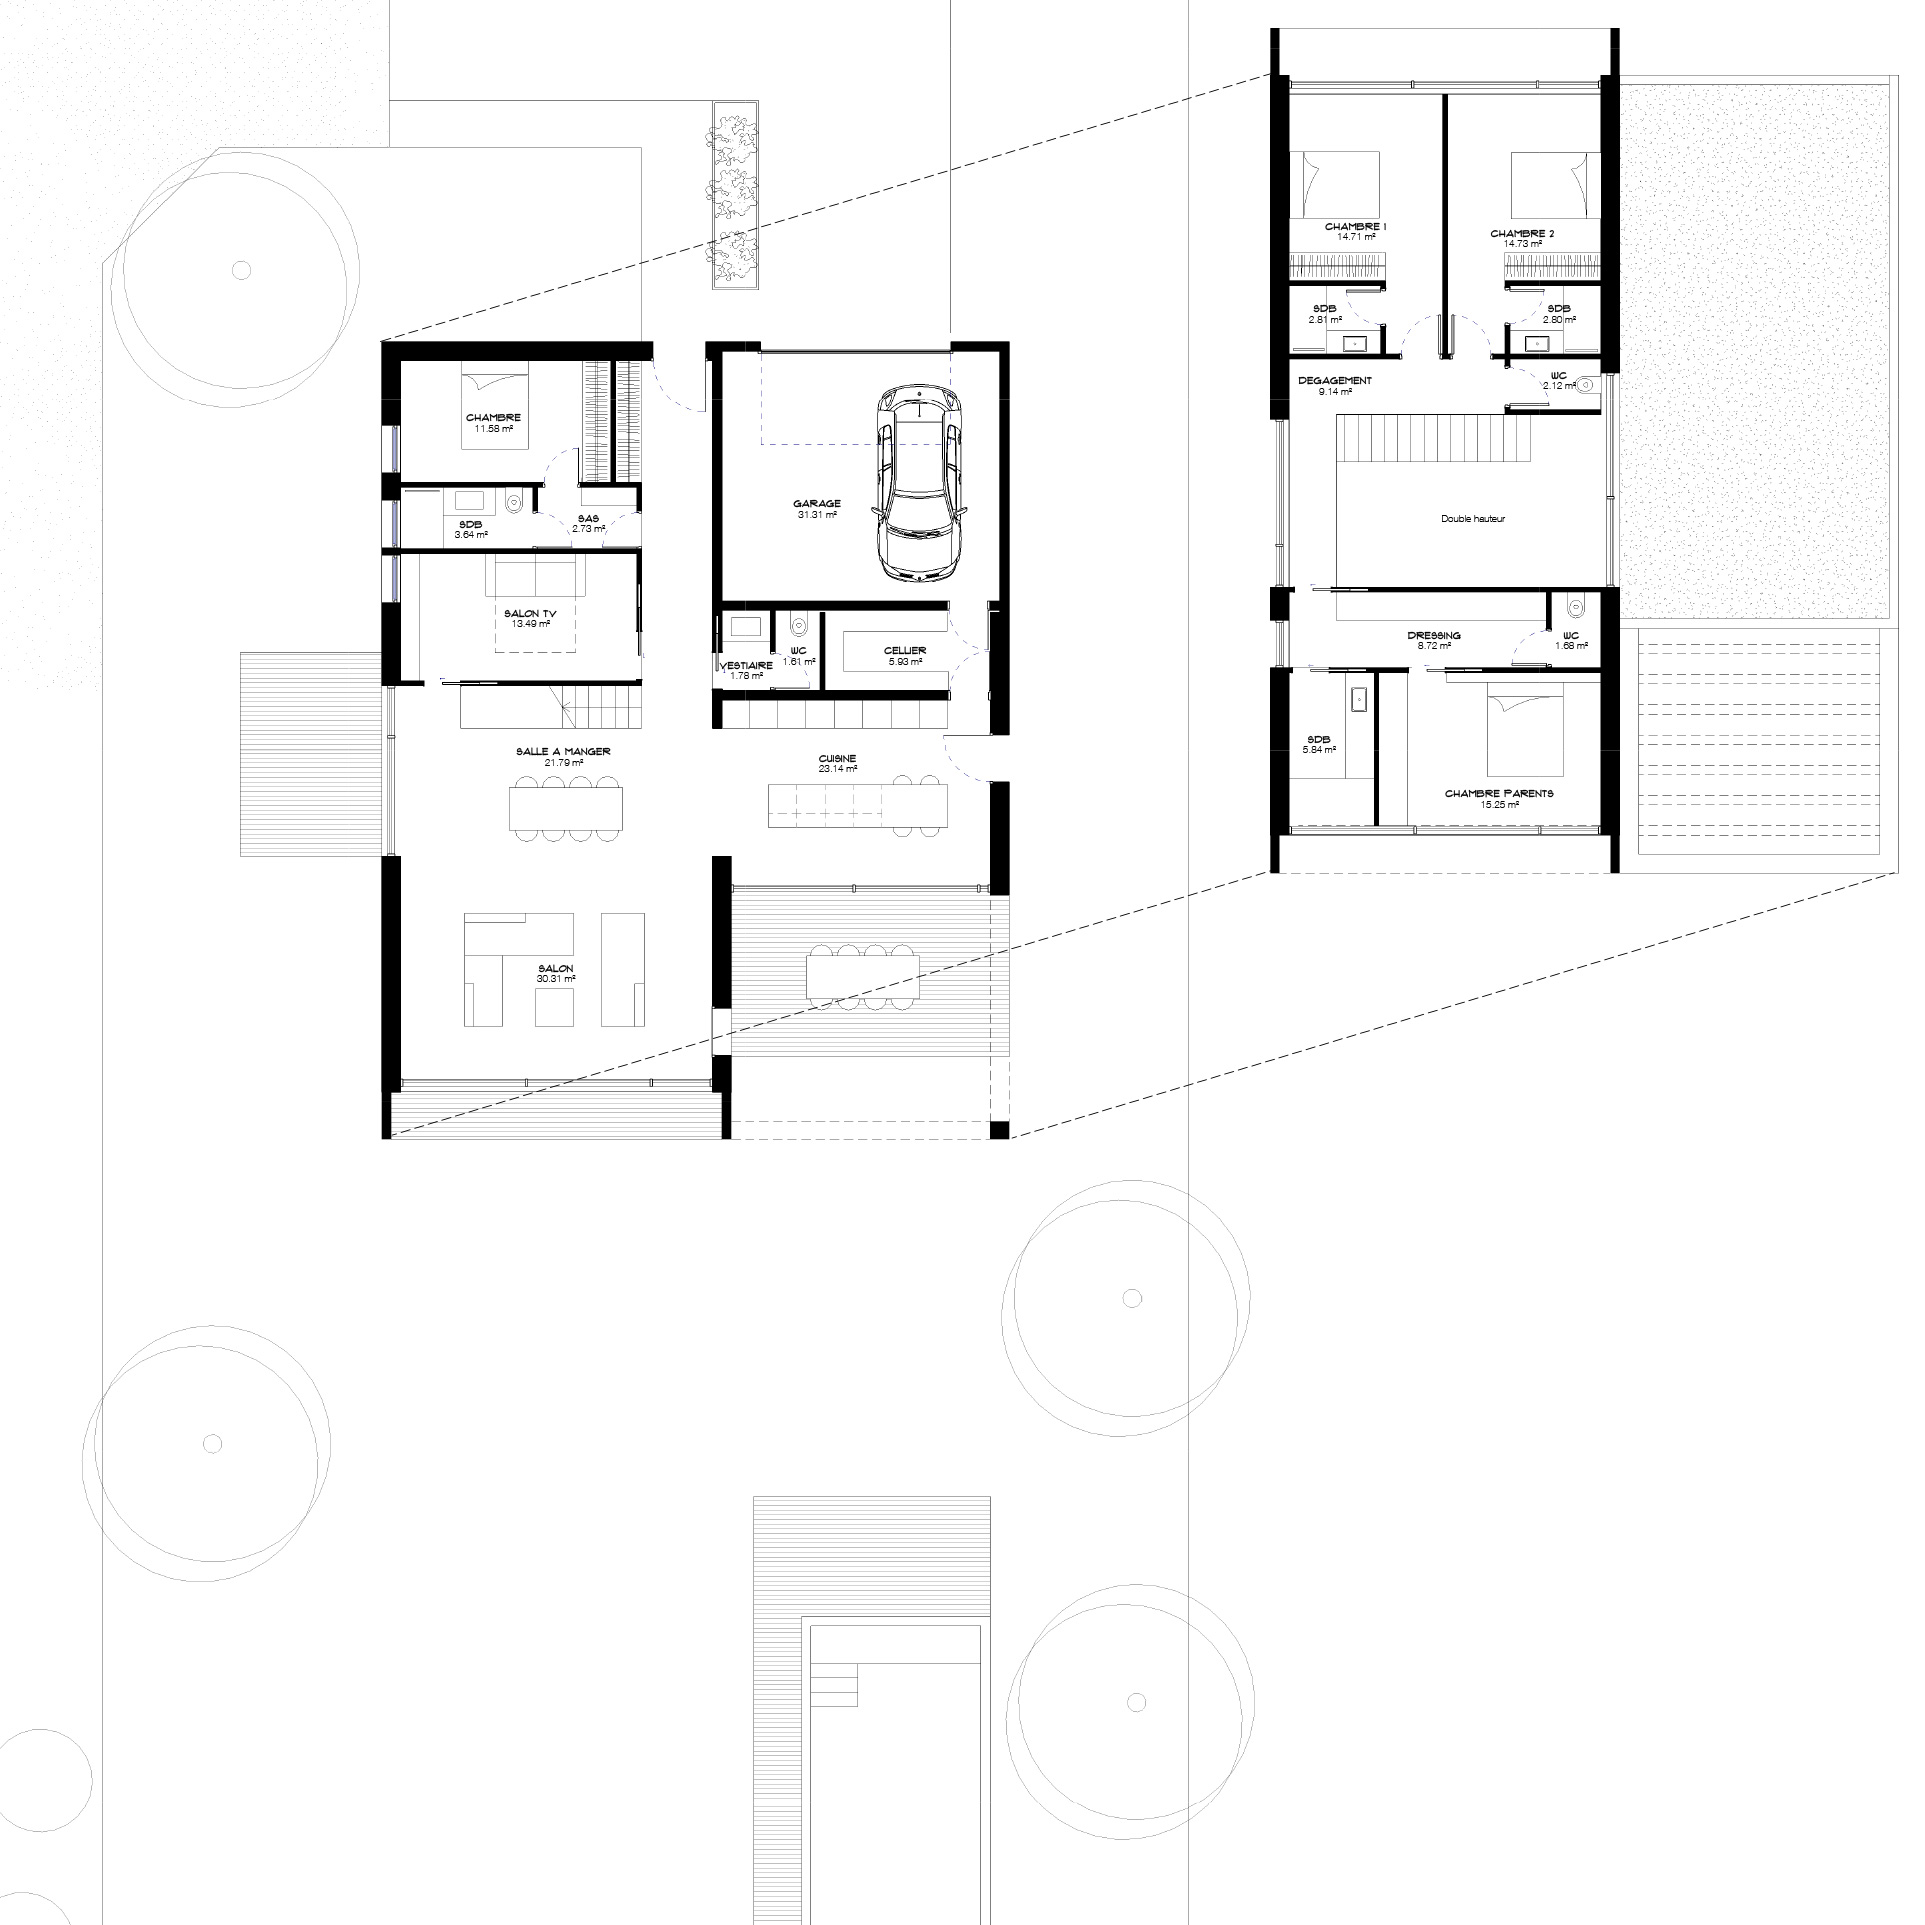 Maison-contemporaine-architecte-Lyon-Plan-architecte-double-hauteur